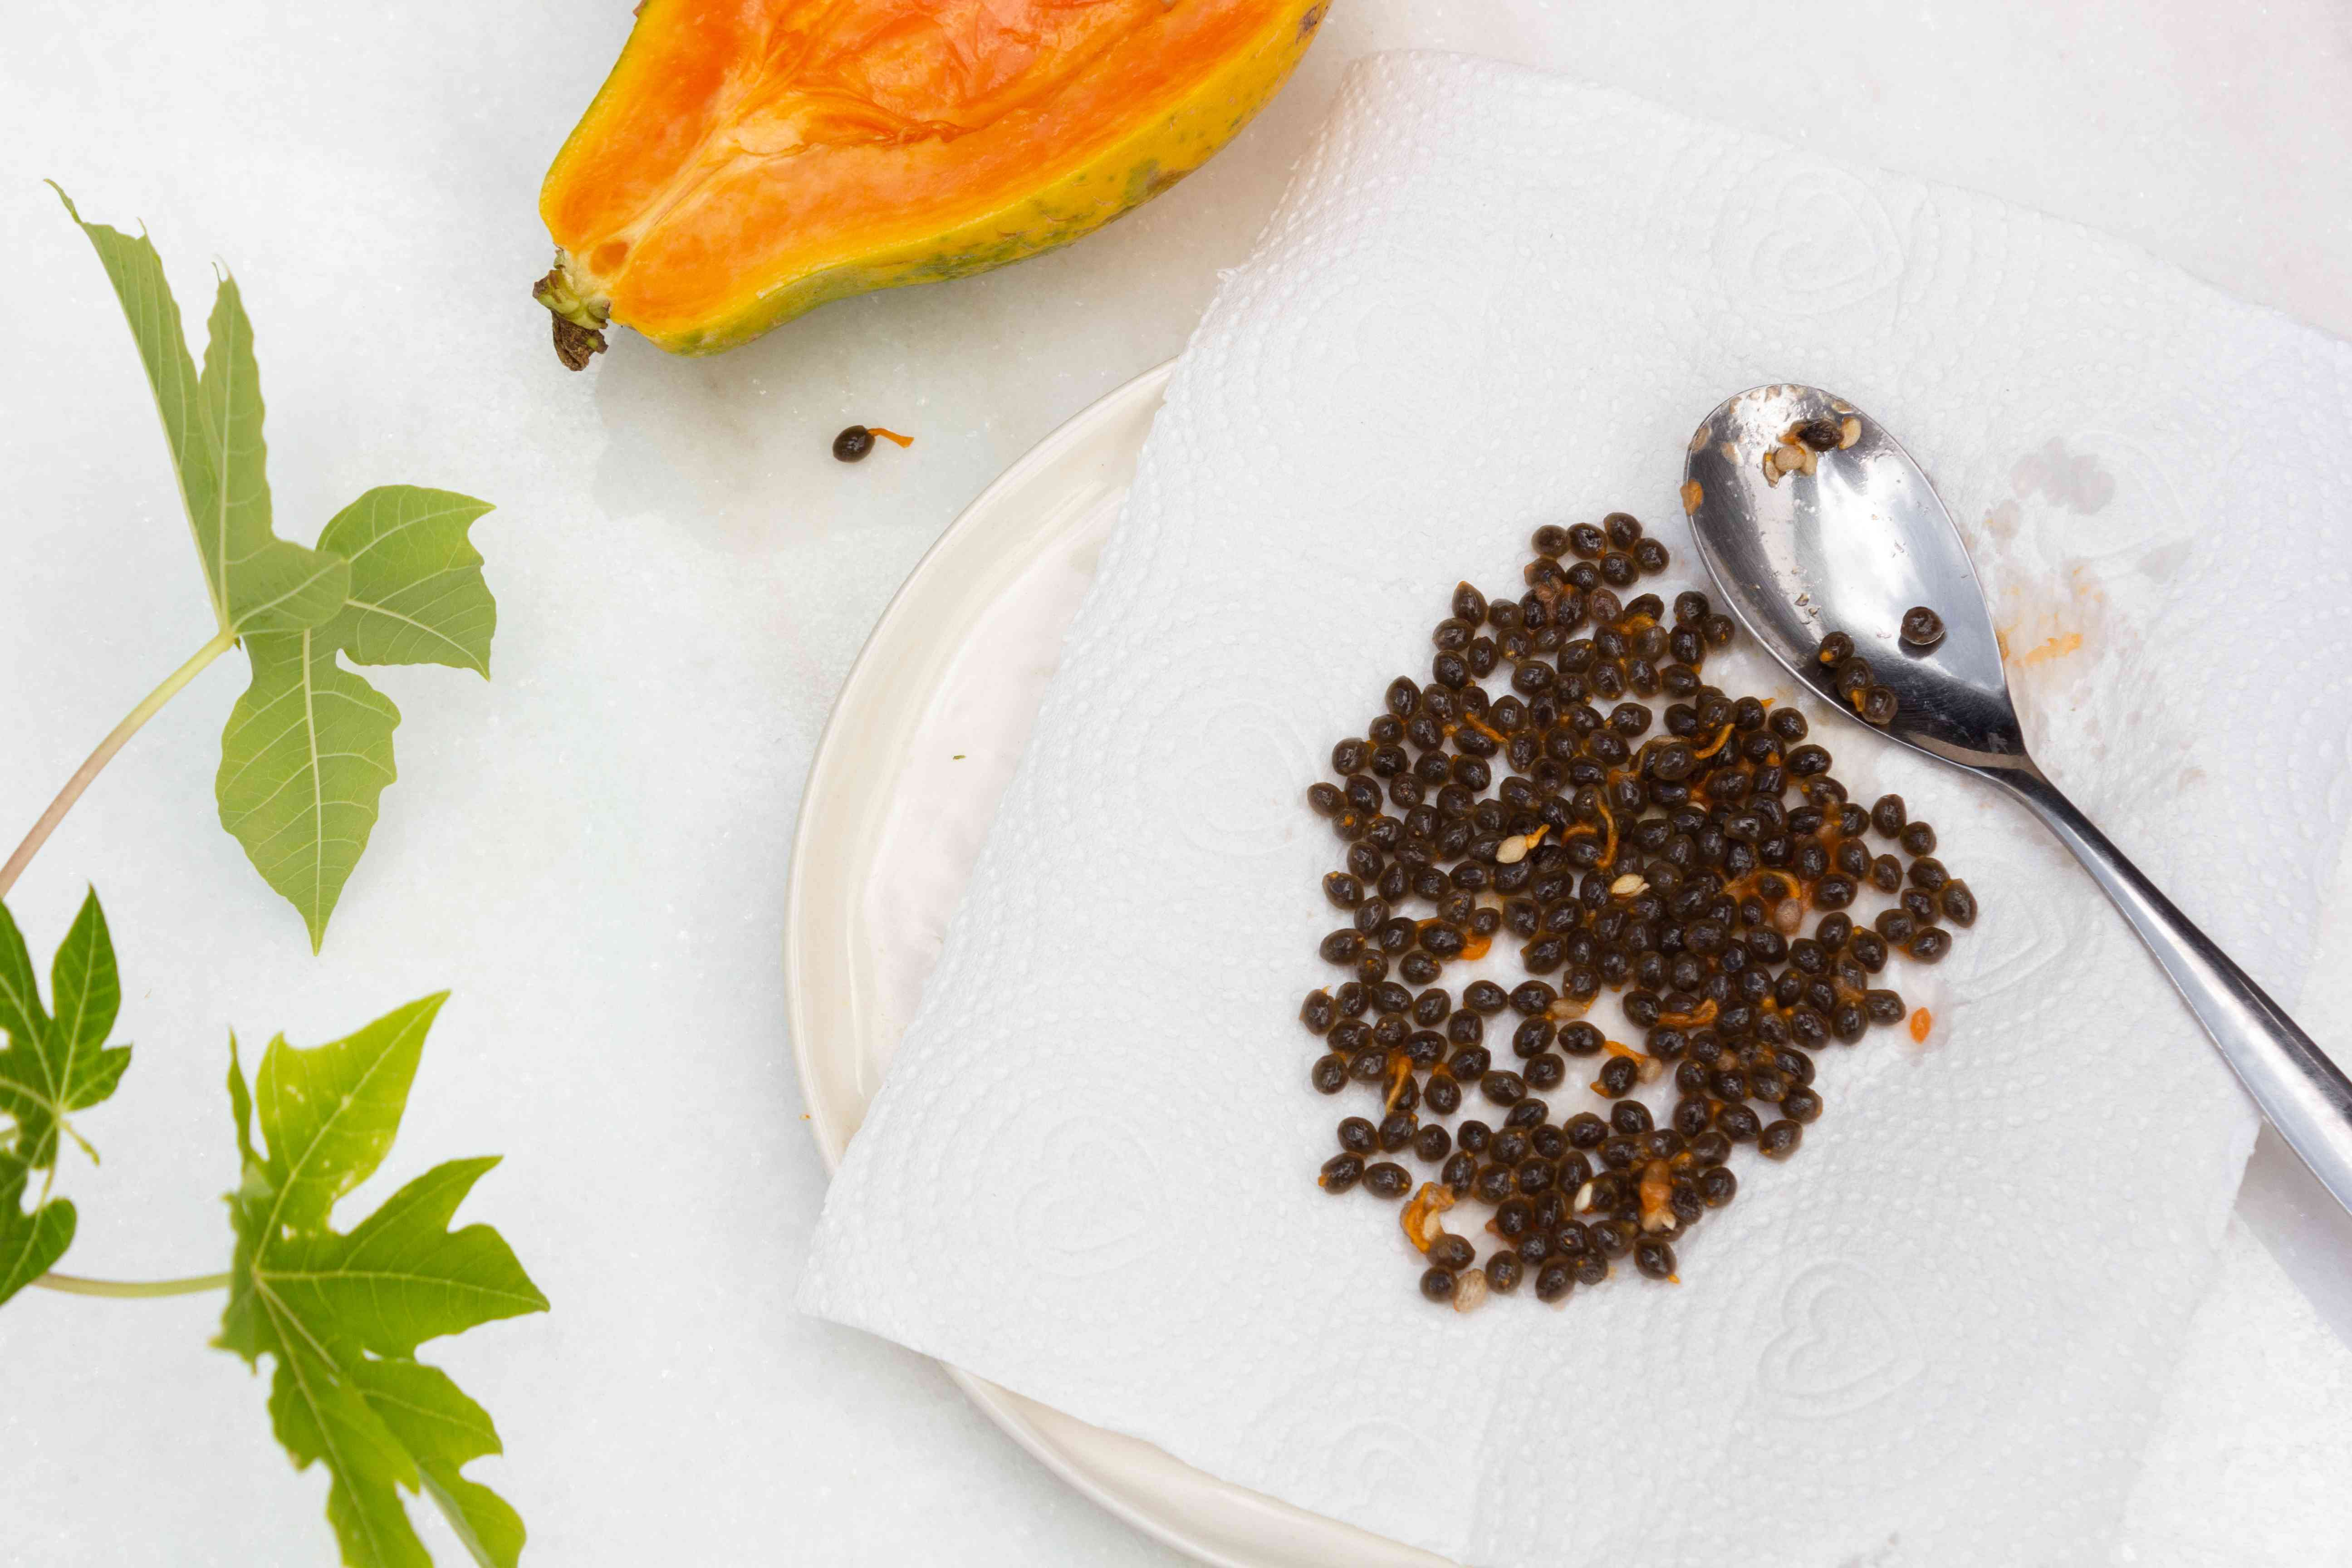 scooped out papaya seeds on a paper towel